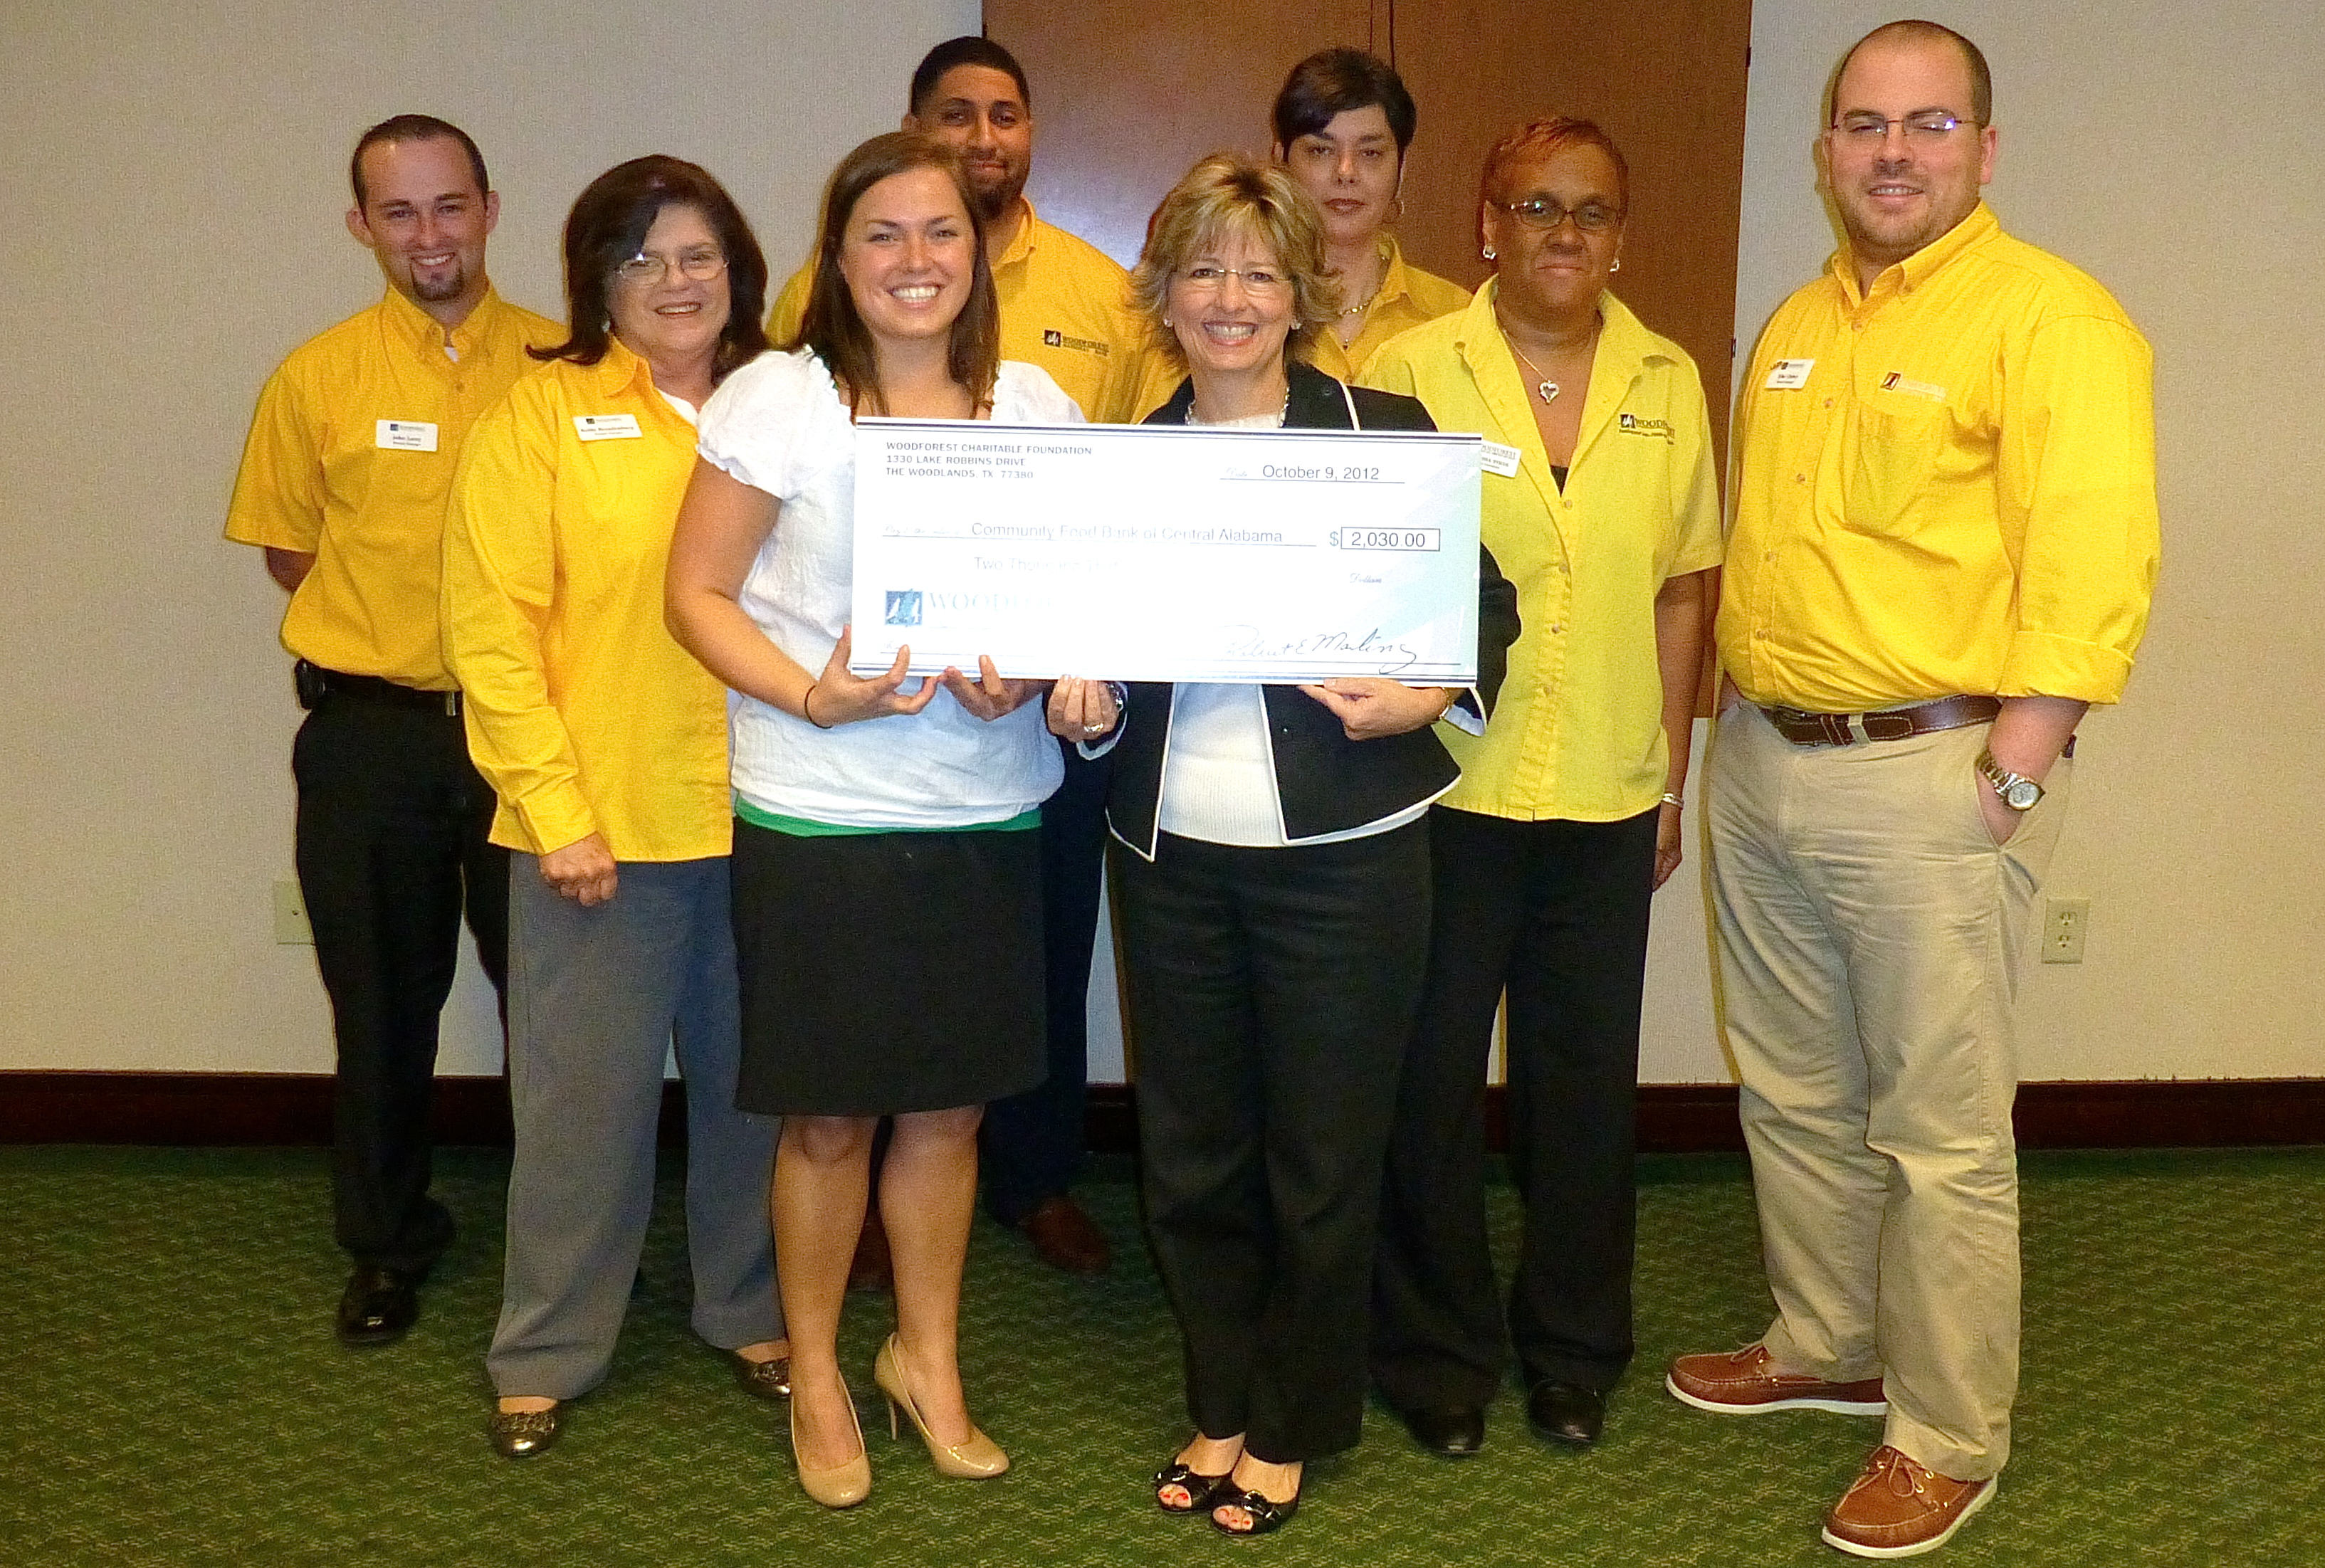 Community Food Bank of Central Alabama receives $2,030 donation from WCF.